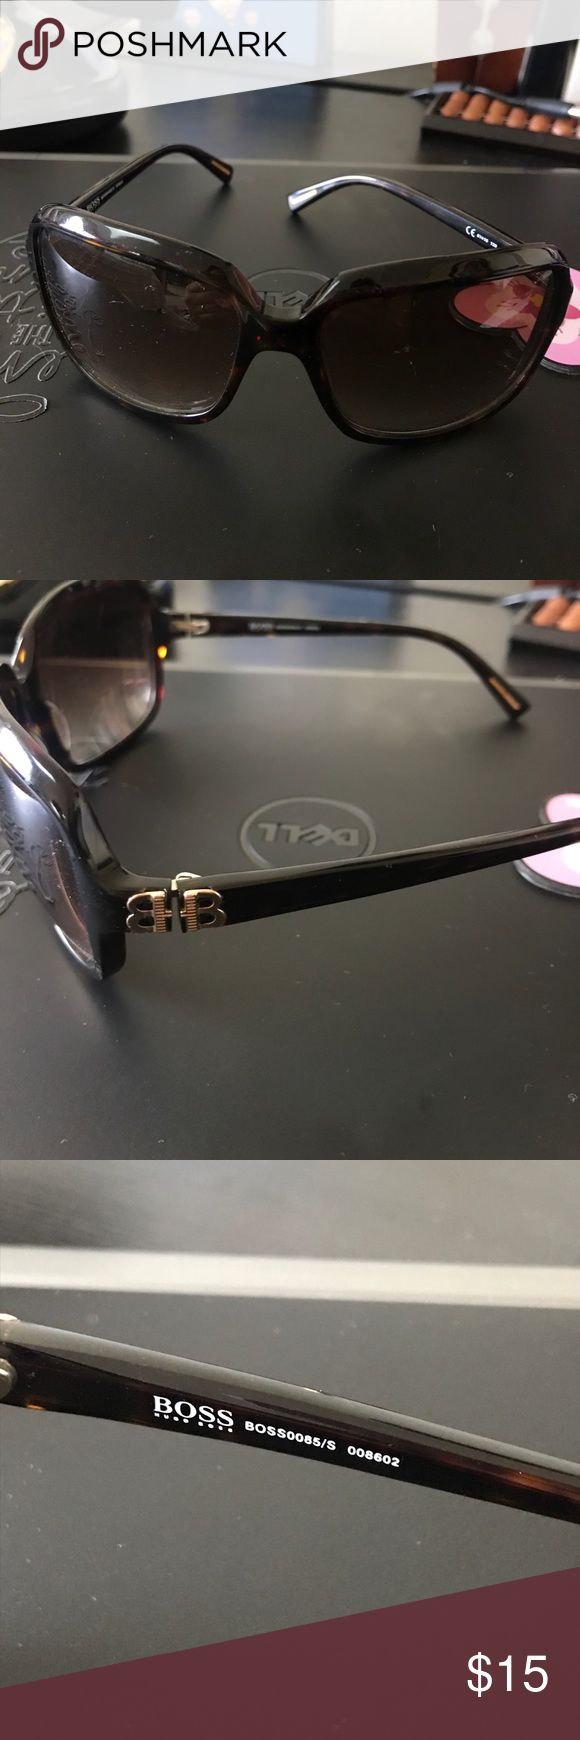 Boss Hugo Boss sunglasses Boss by Hugo Boss square brown sunglasses. These sunglasses show some scratches throughout. Hugo Boss Accessories Sunglasses